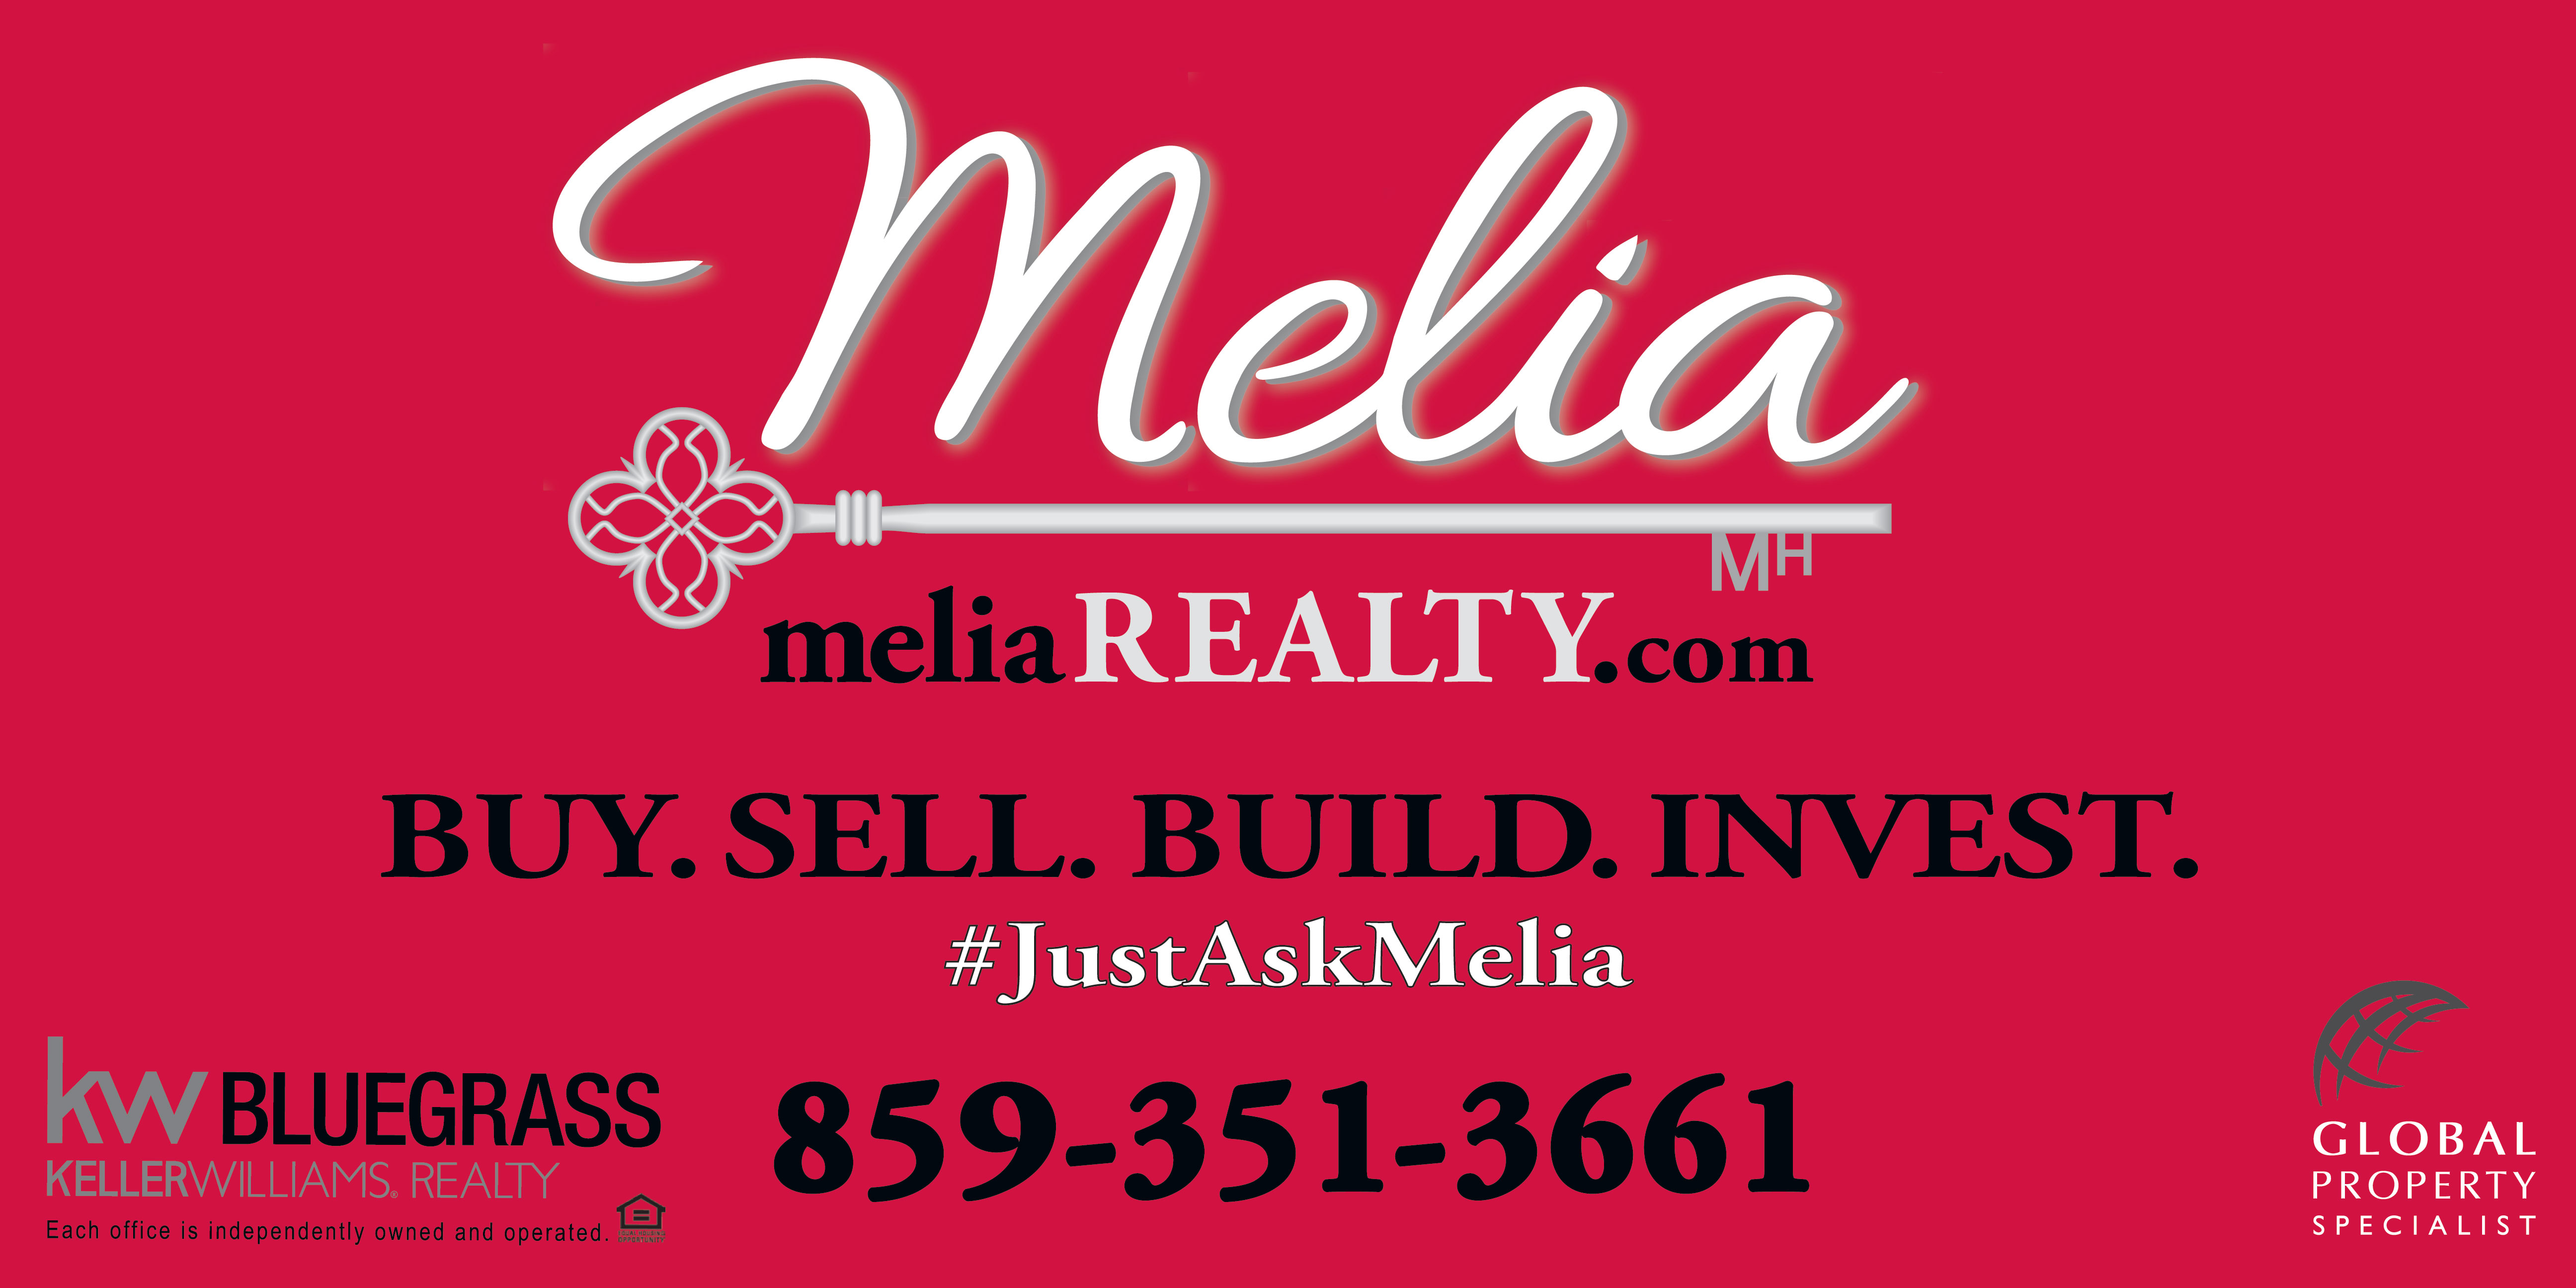 Melia Realty joins KYLead as a Mentoring Sponsor